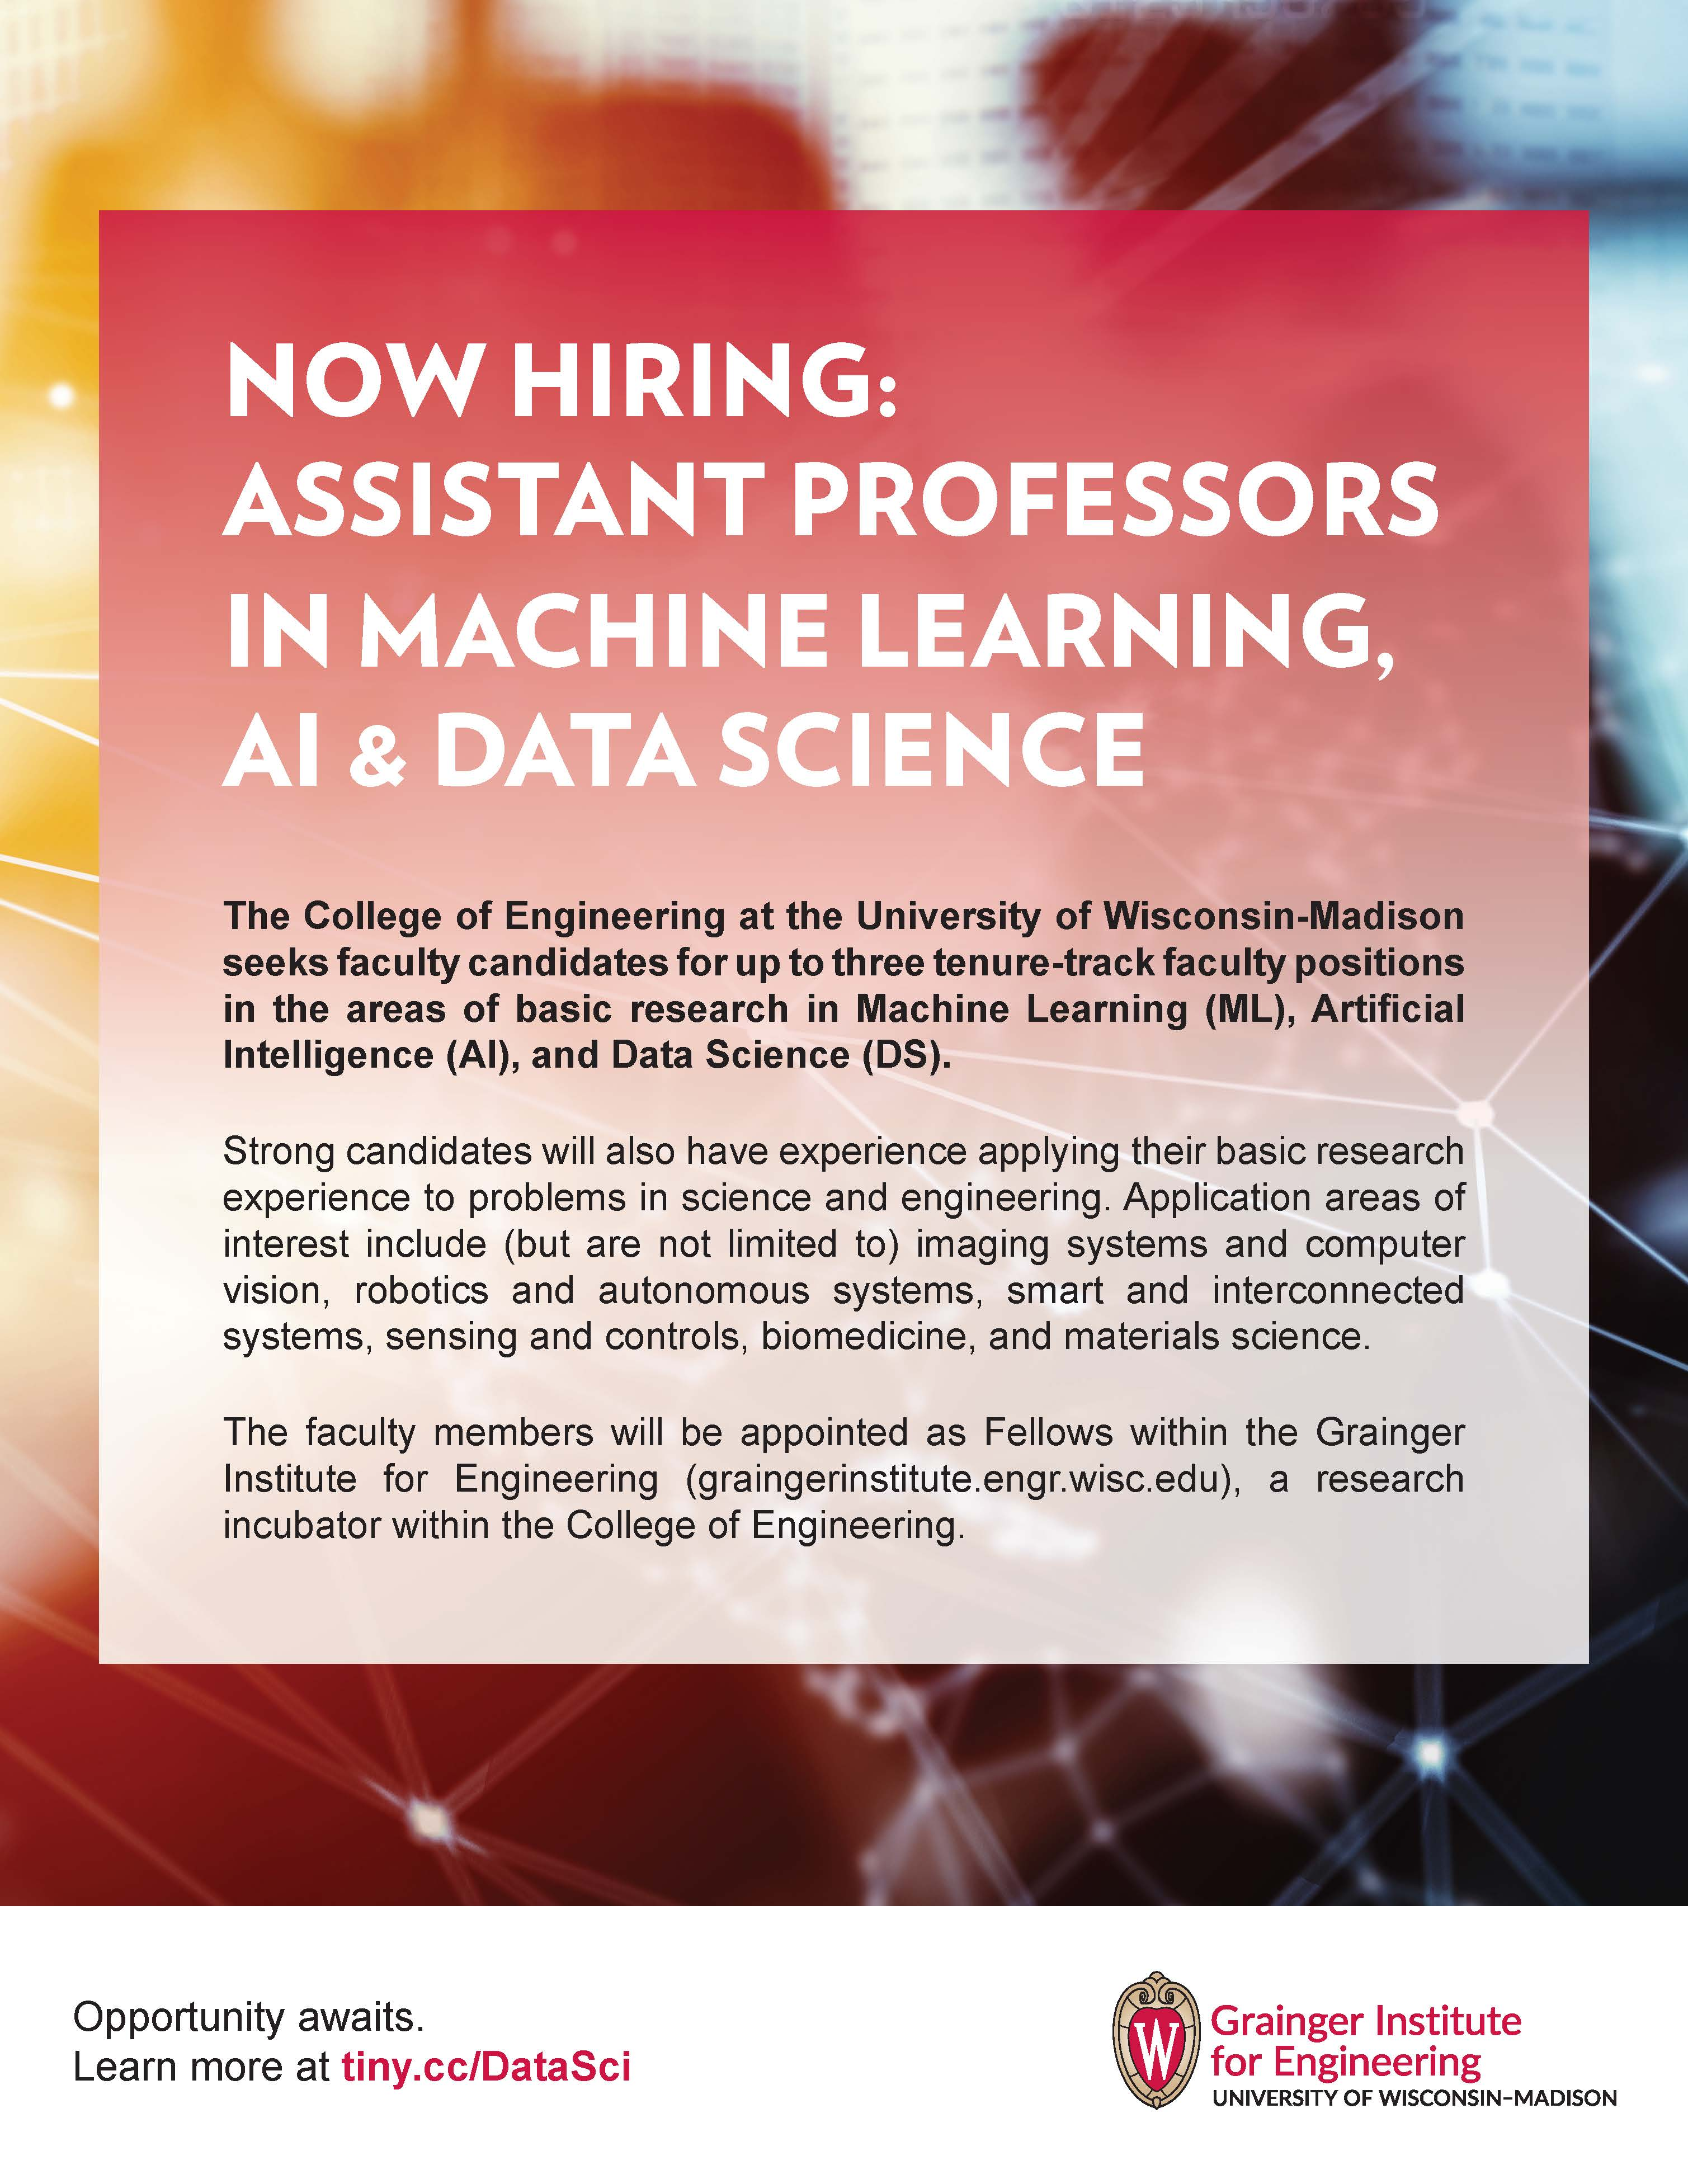 ASSISTANT PROFESSOR IN MACHINE LEARNING, AI & DATA SCIENCE